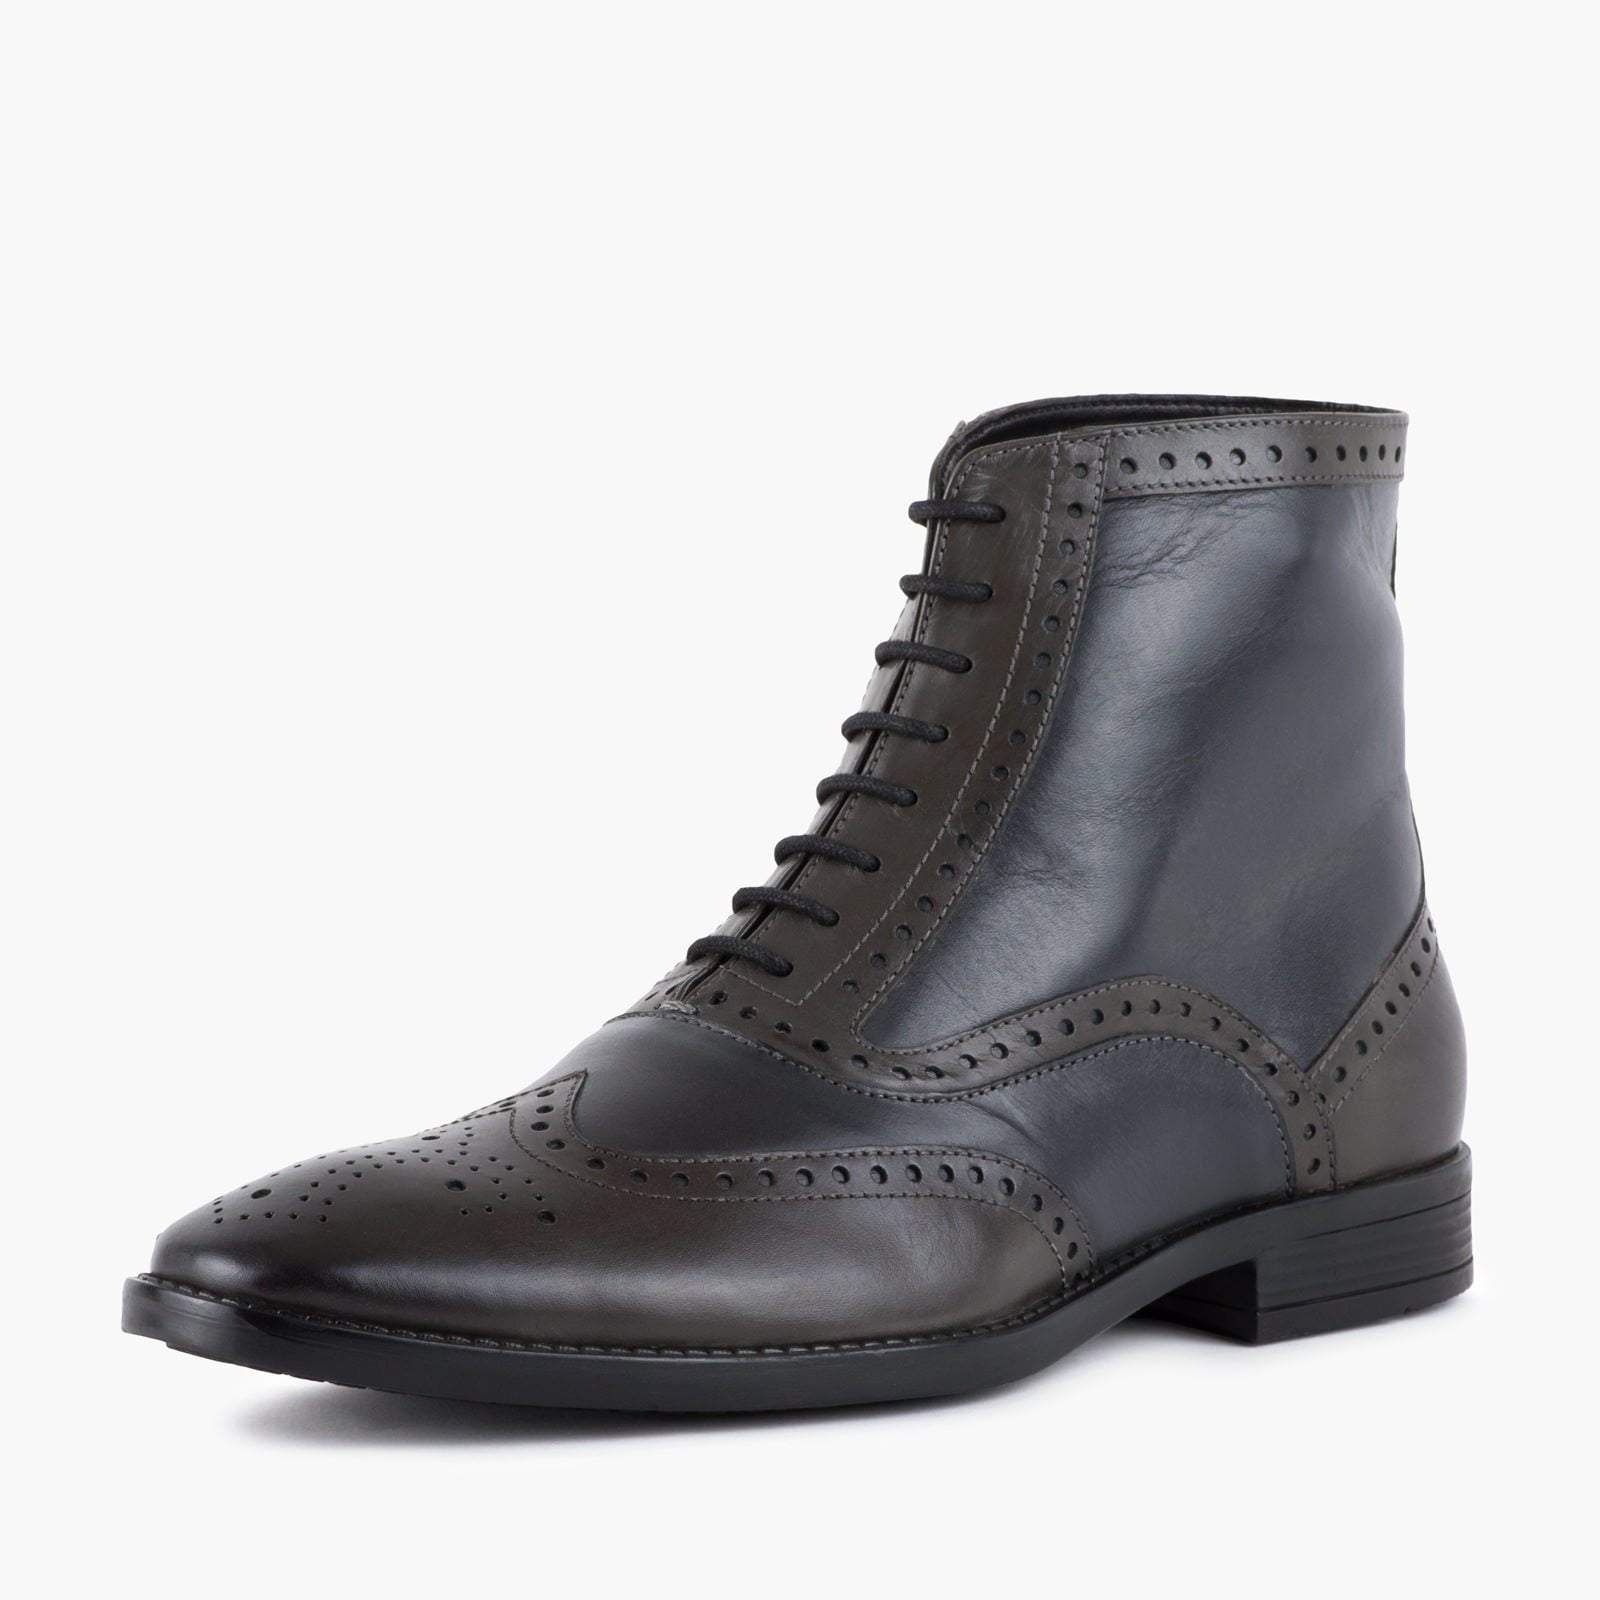 BUGSY CHARCOAL LEATHER OXFORD BROGUE BOOT